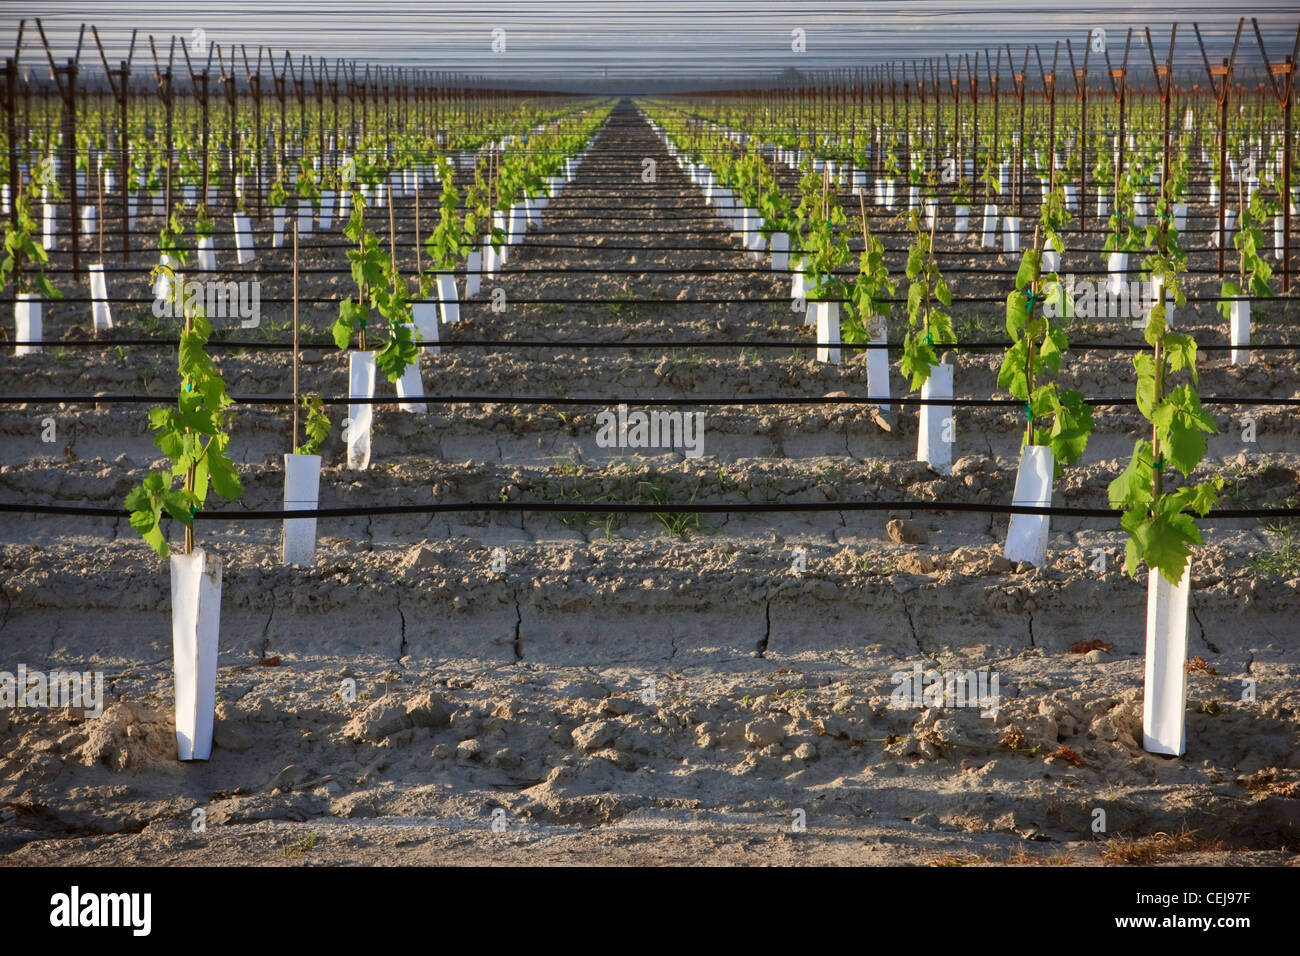 Agriculture A Young Table Grape Vineyard Utilizing An